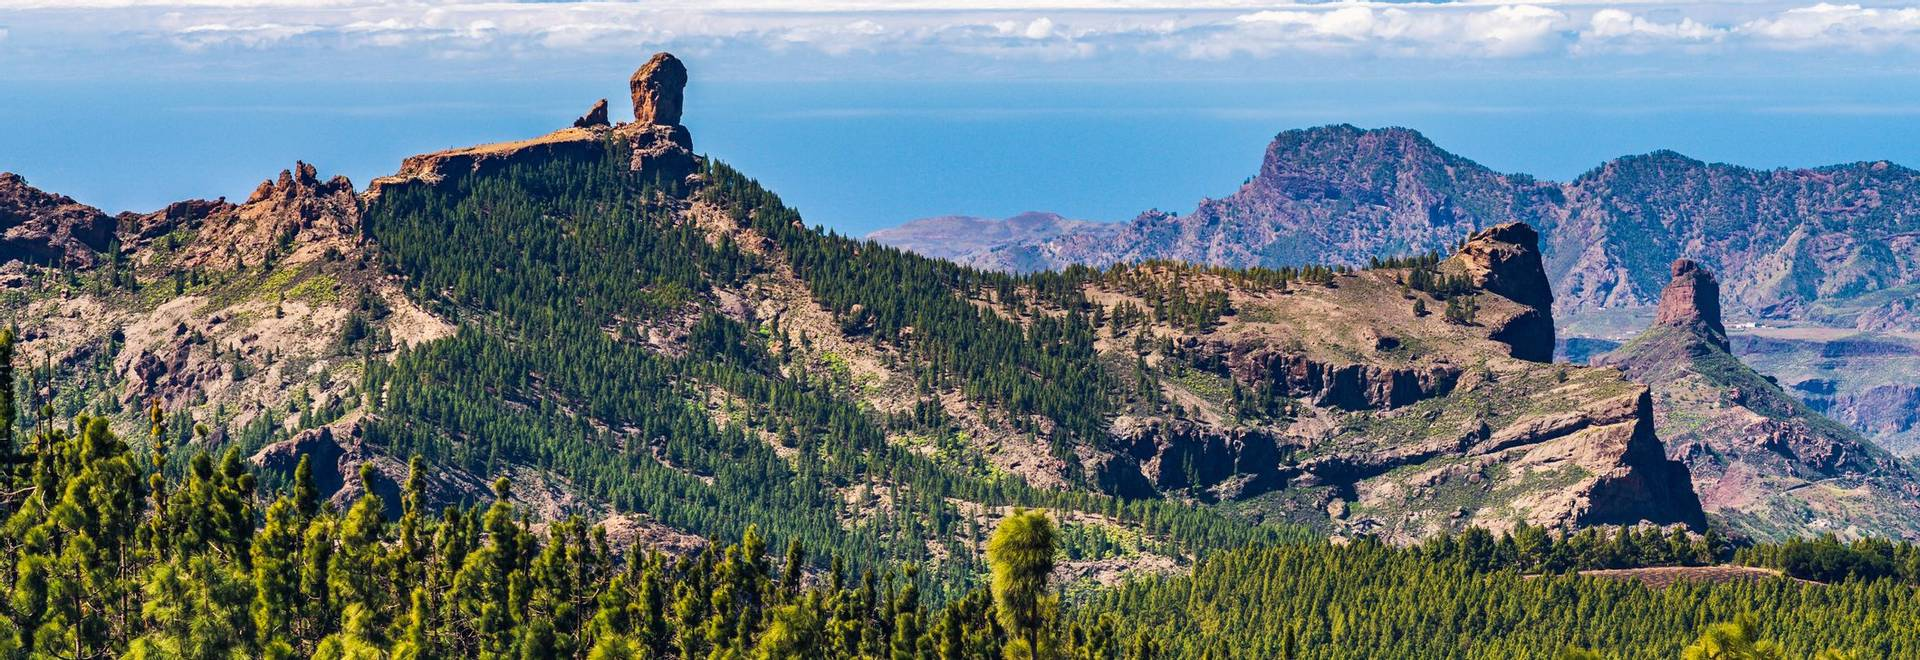 Colorful and scenic View Of Roque Nublo And El Teide - Tejeda, Gran Canaria, Canary Islands, Spain